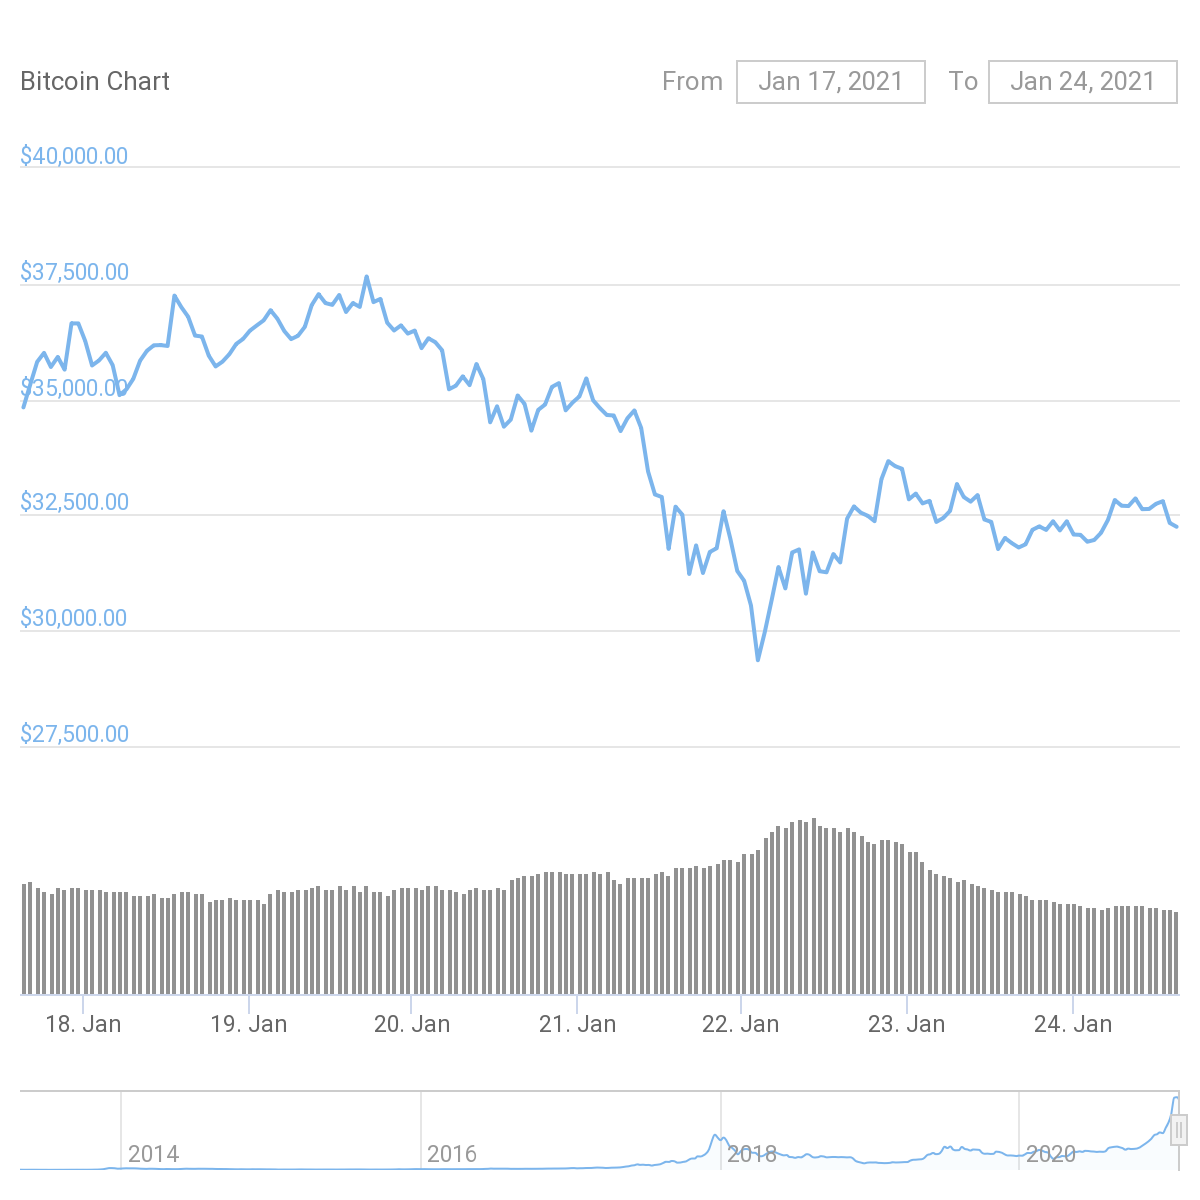 7-day BTC/USD chart. Source: CoinGecko